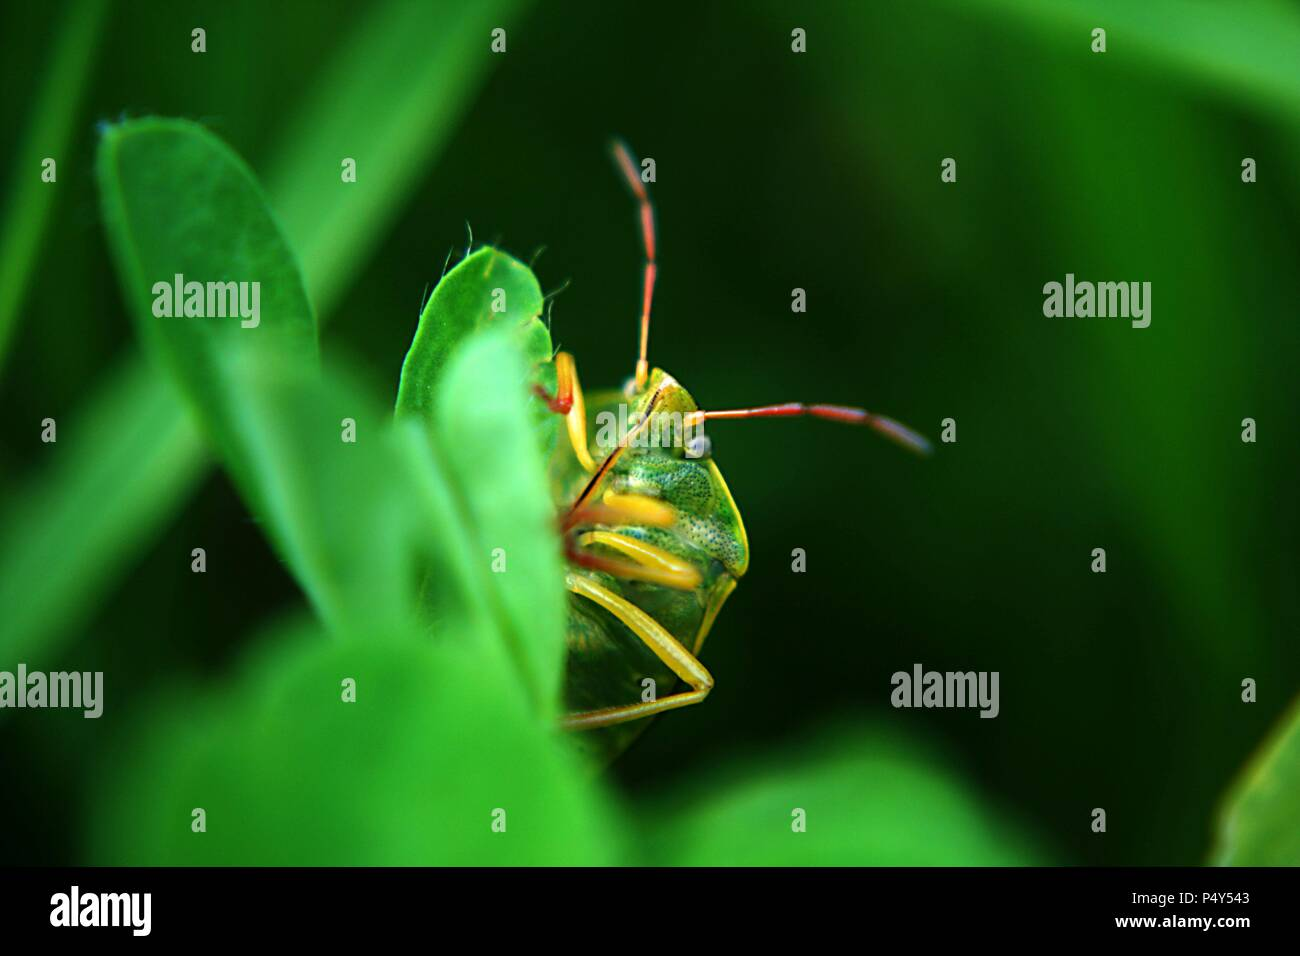 Green Shield Bug in the undergrowth - Stock Image